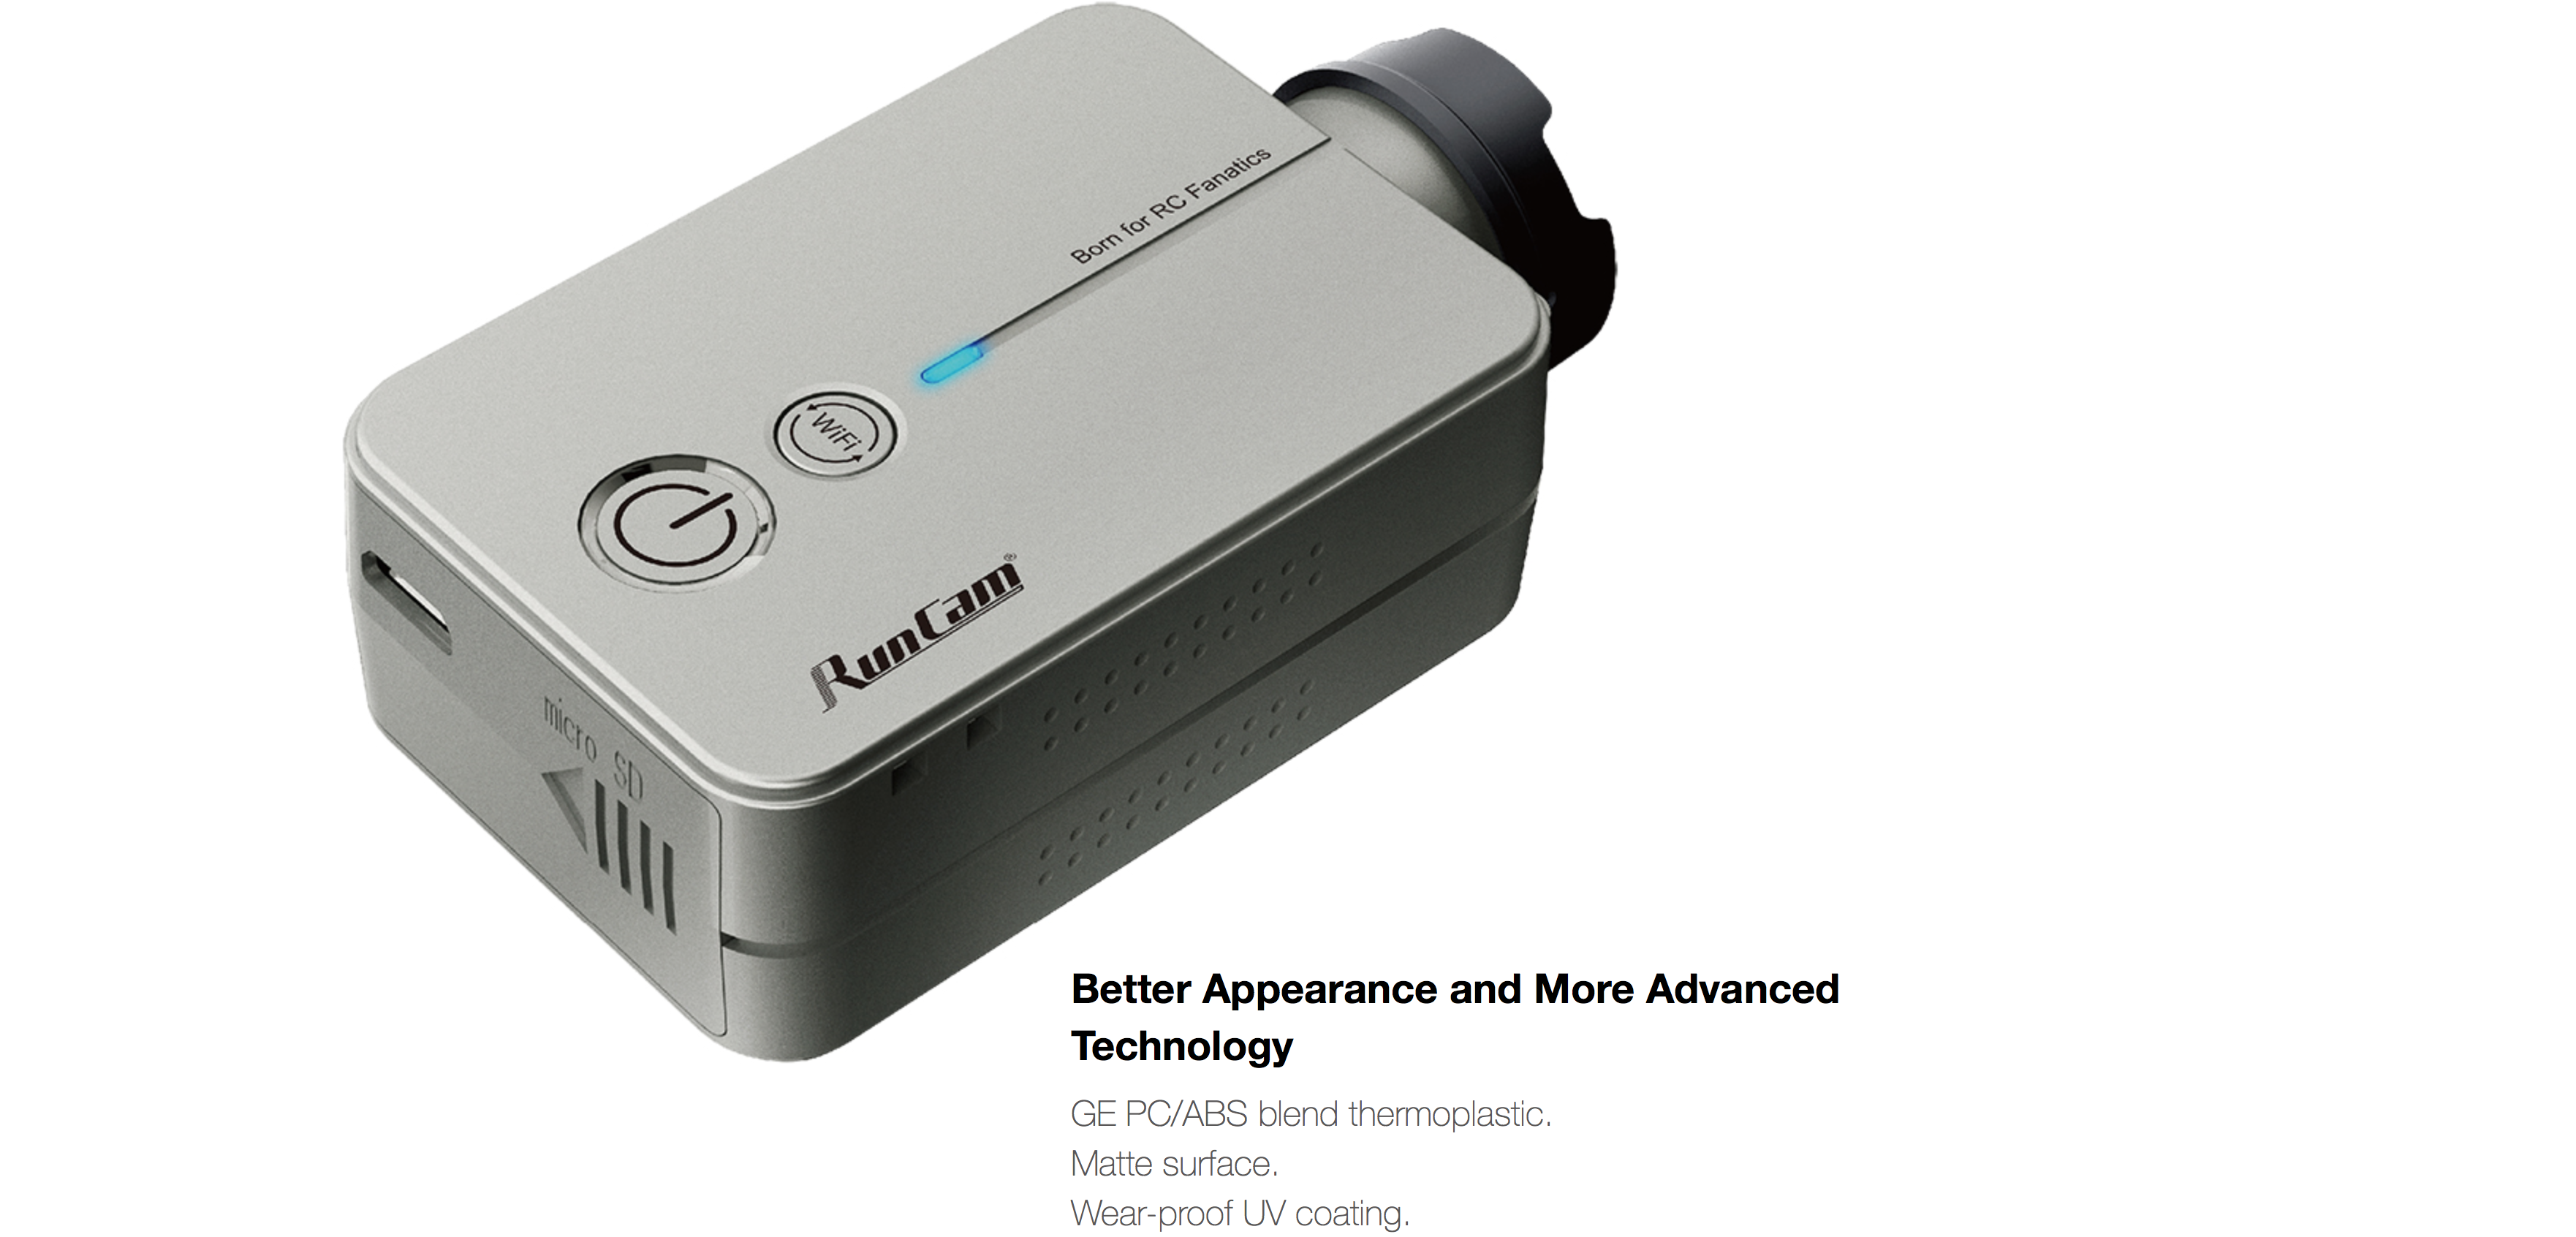 RunCam 2 Better Appearance and More Advanced Technology